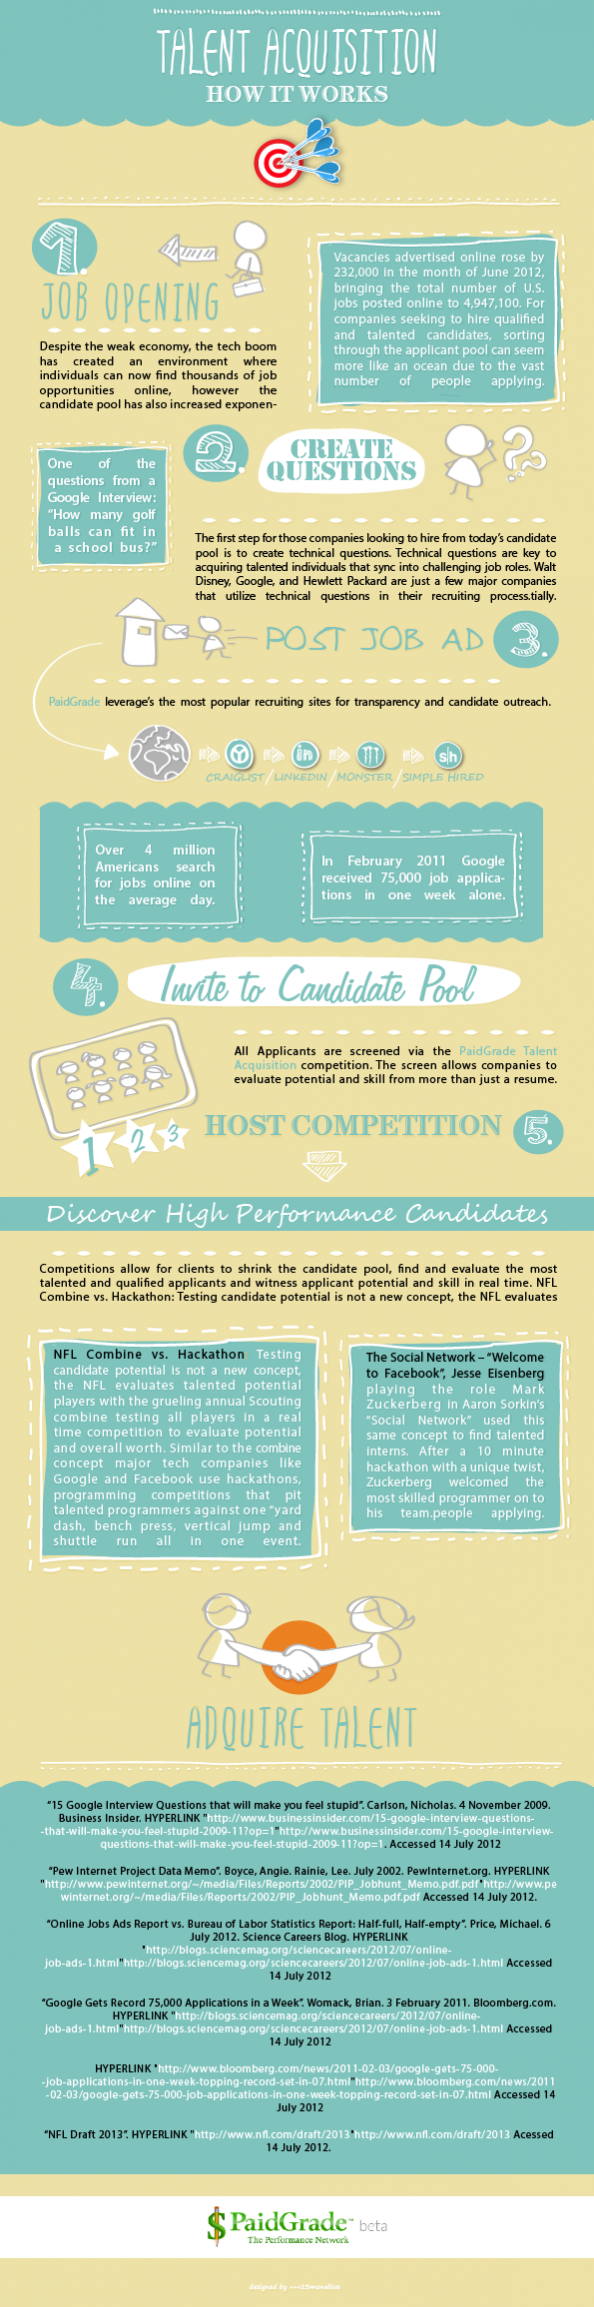 Talent Adquisition Infographic